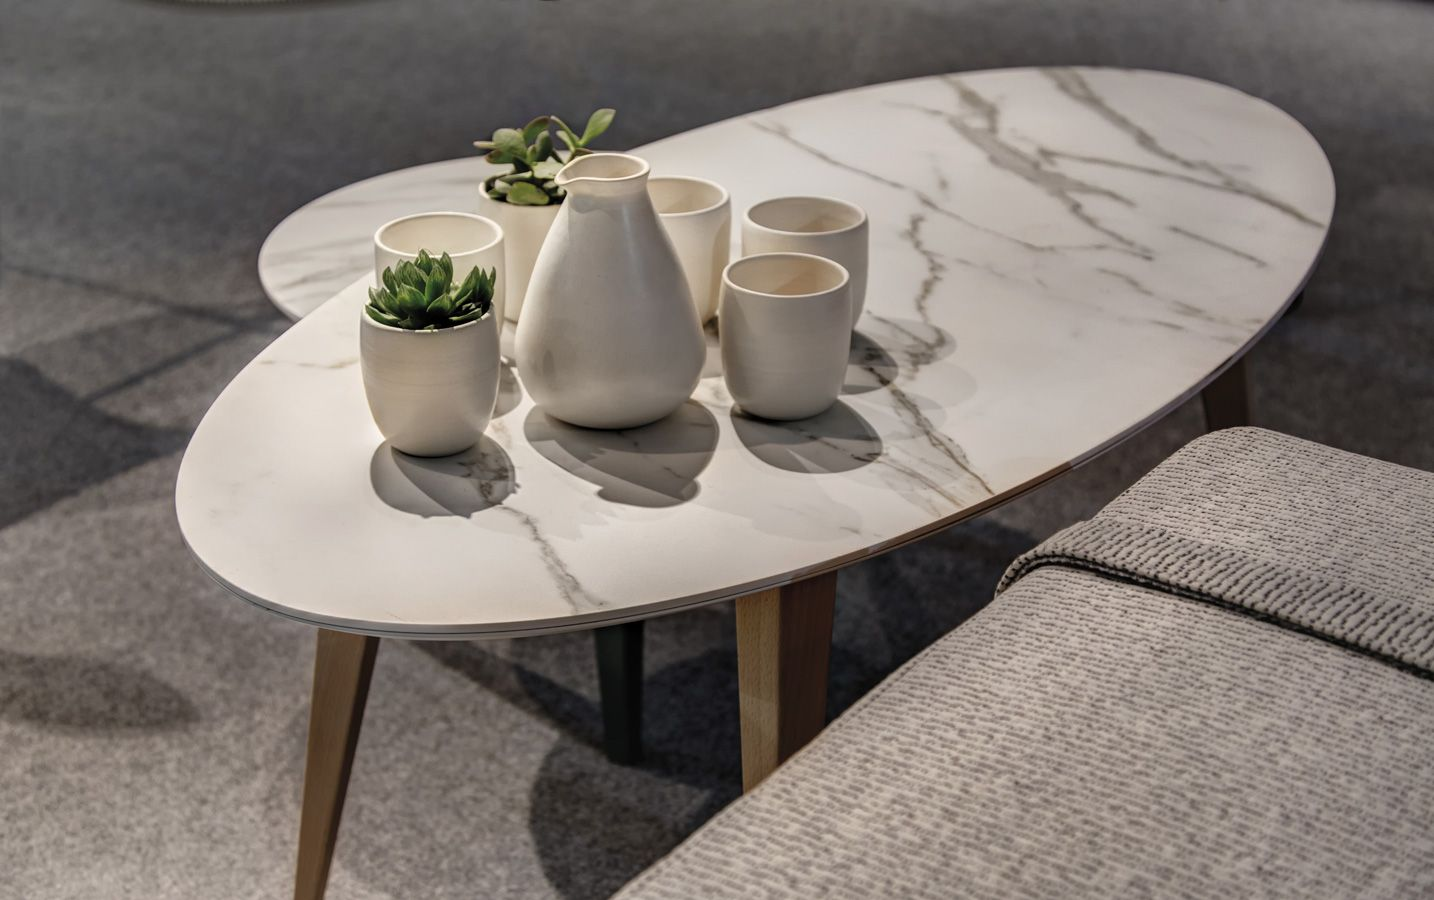 Friulsedie Prezzi ~ Pin by designideas on neolith web pinterest spaces